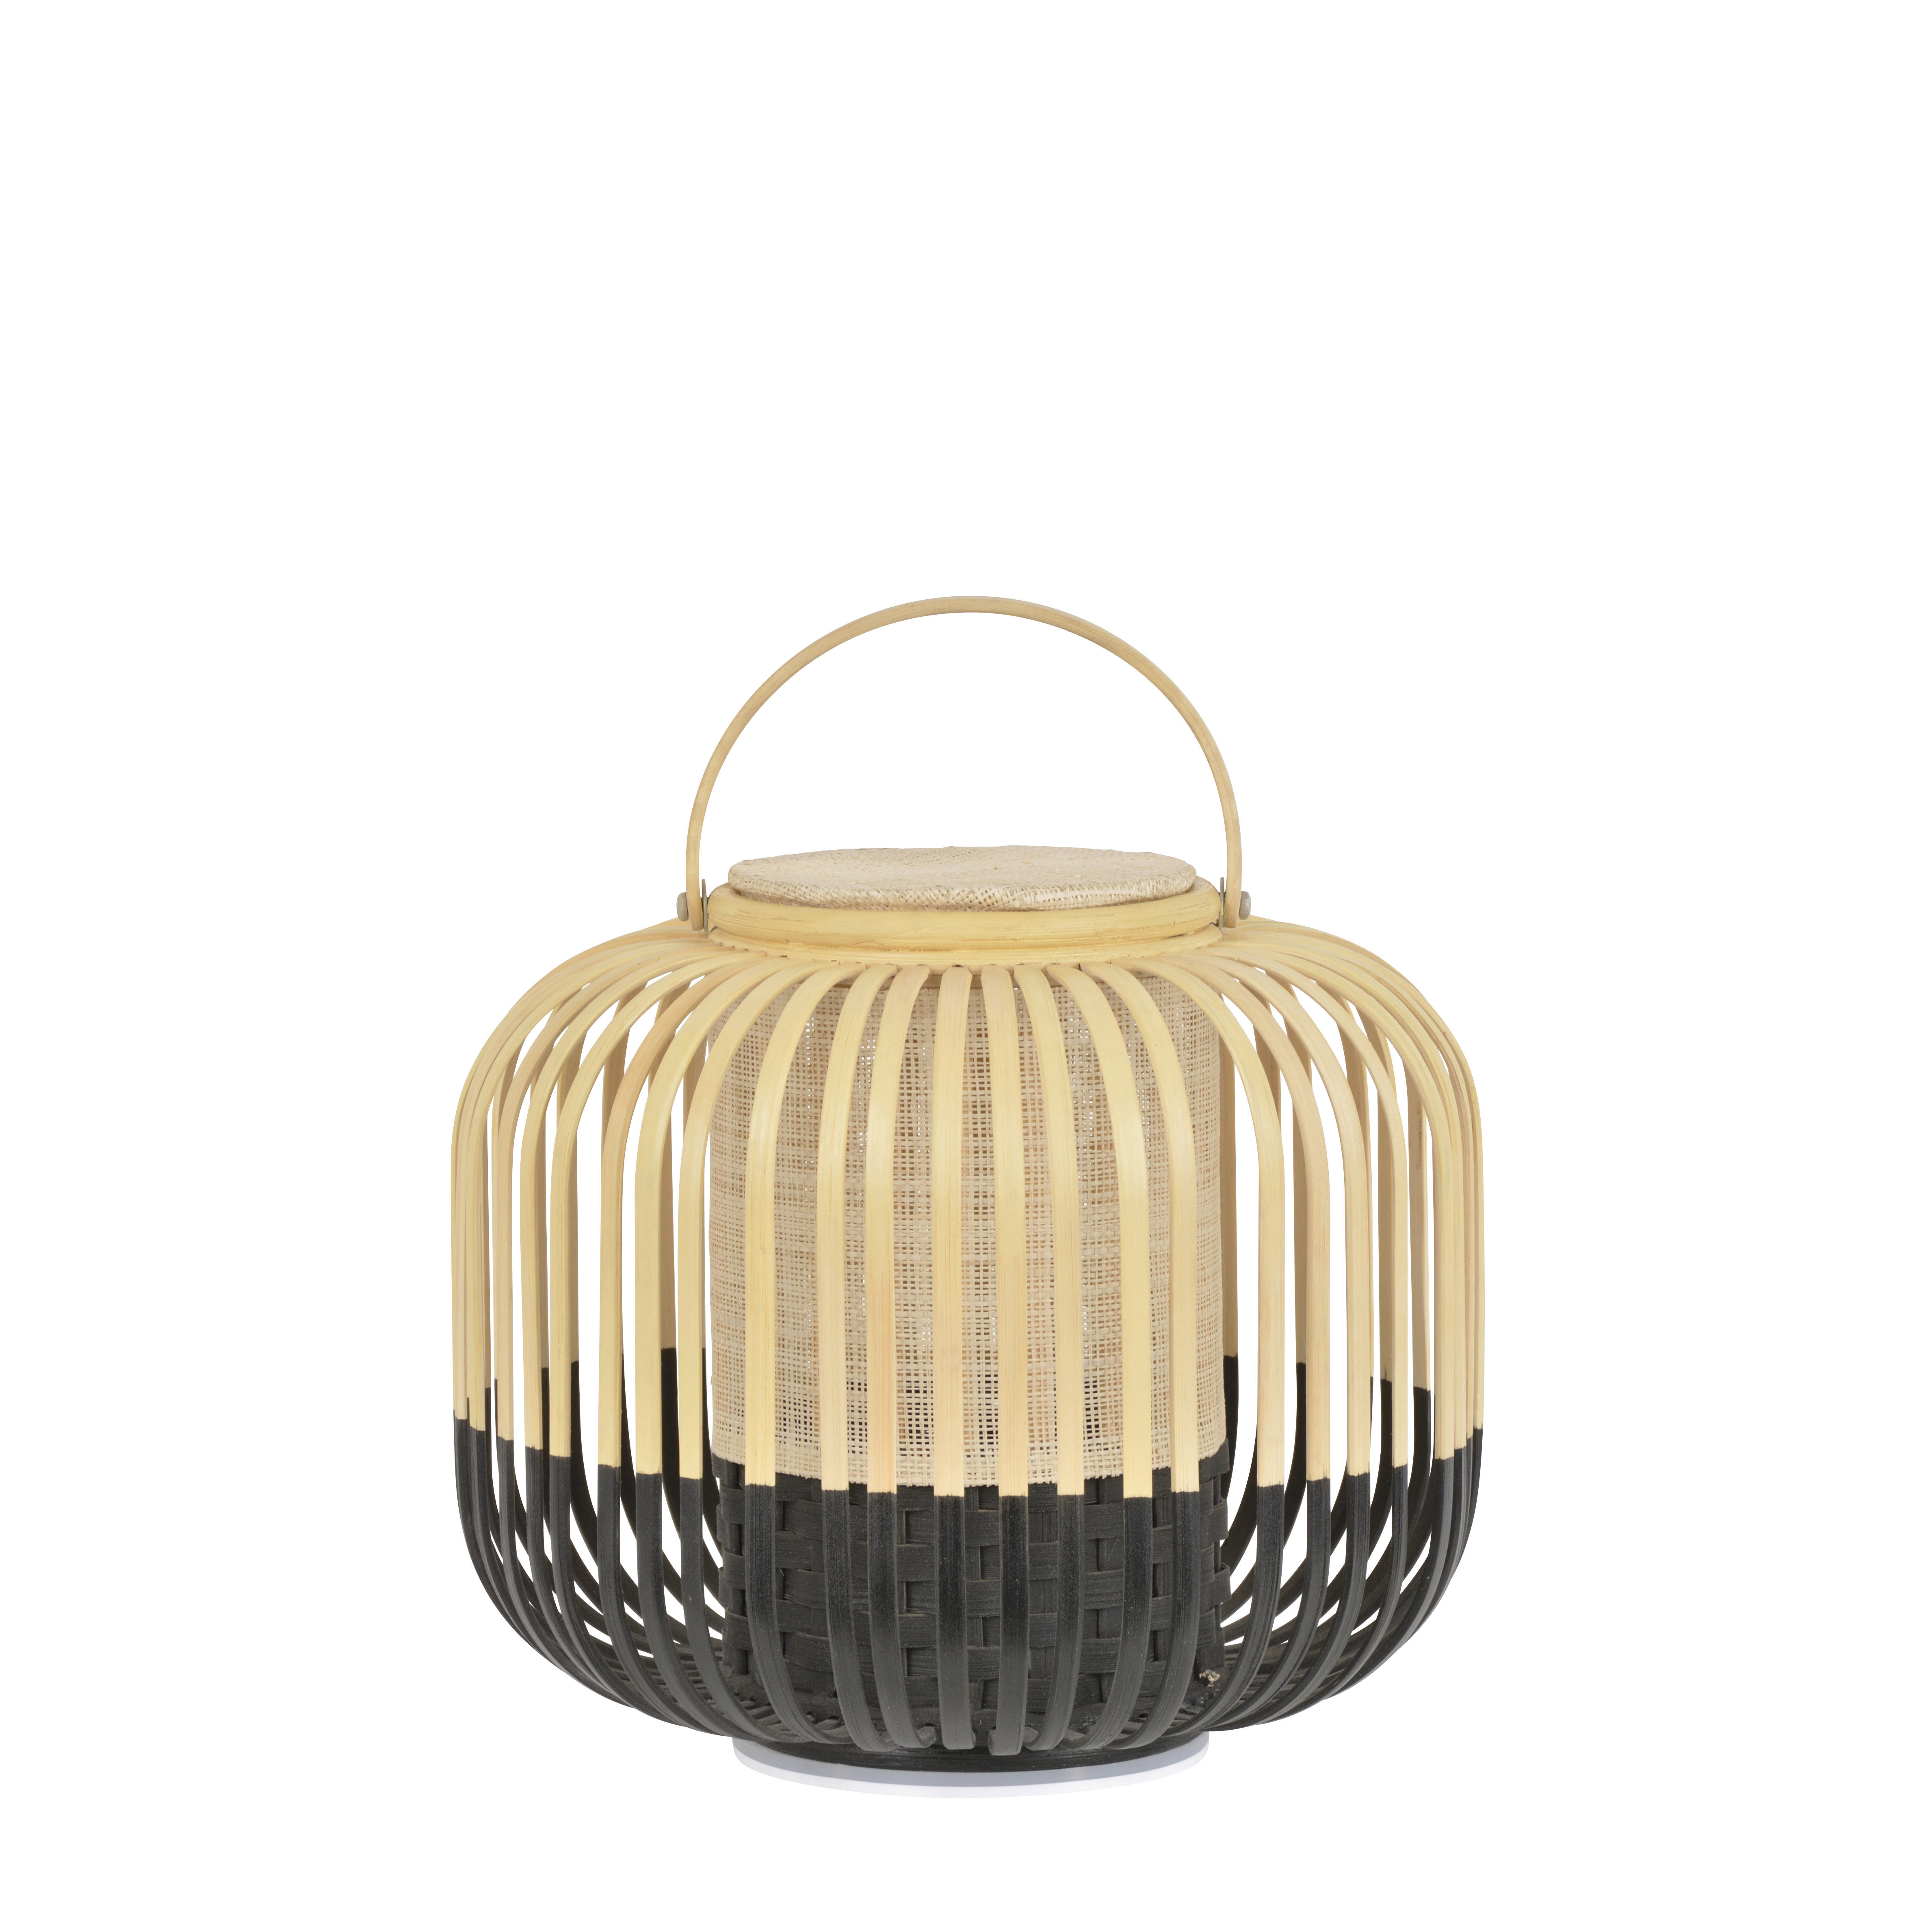 Lighting - Table Lamps - Take A Way LED Wireless lamp - / XS - Ø 27 x H 29 cm - USB charging by Forestier - Black / Natural - Bamboo